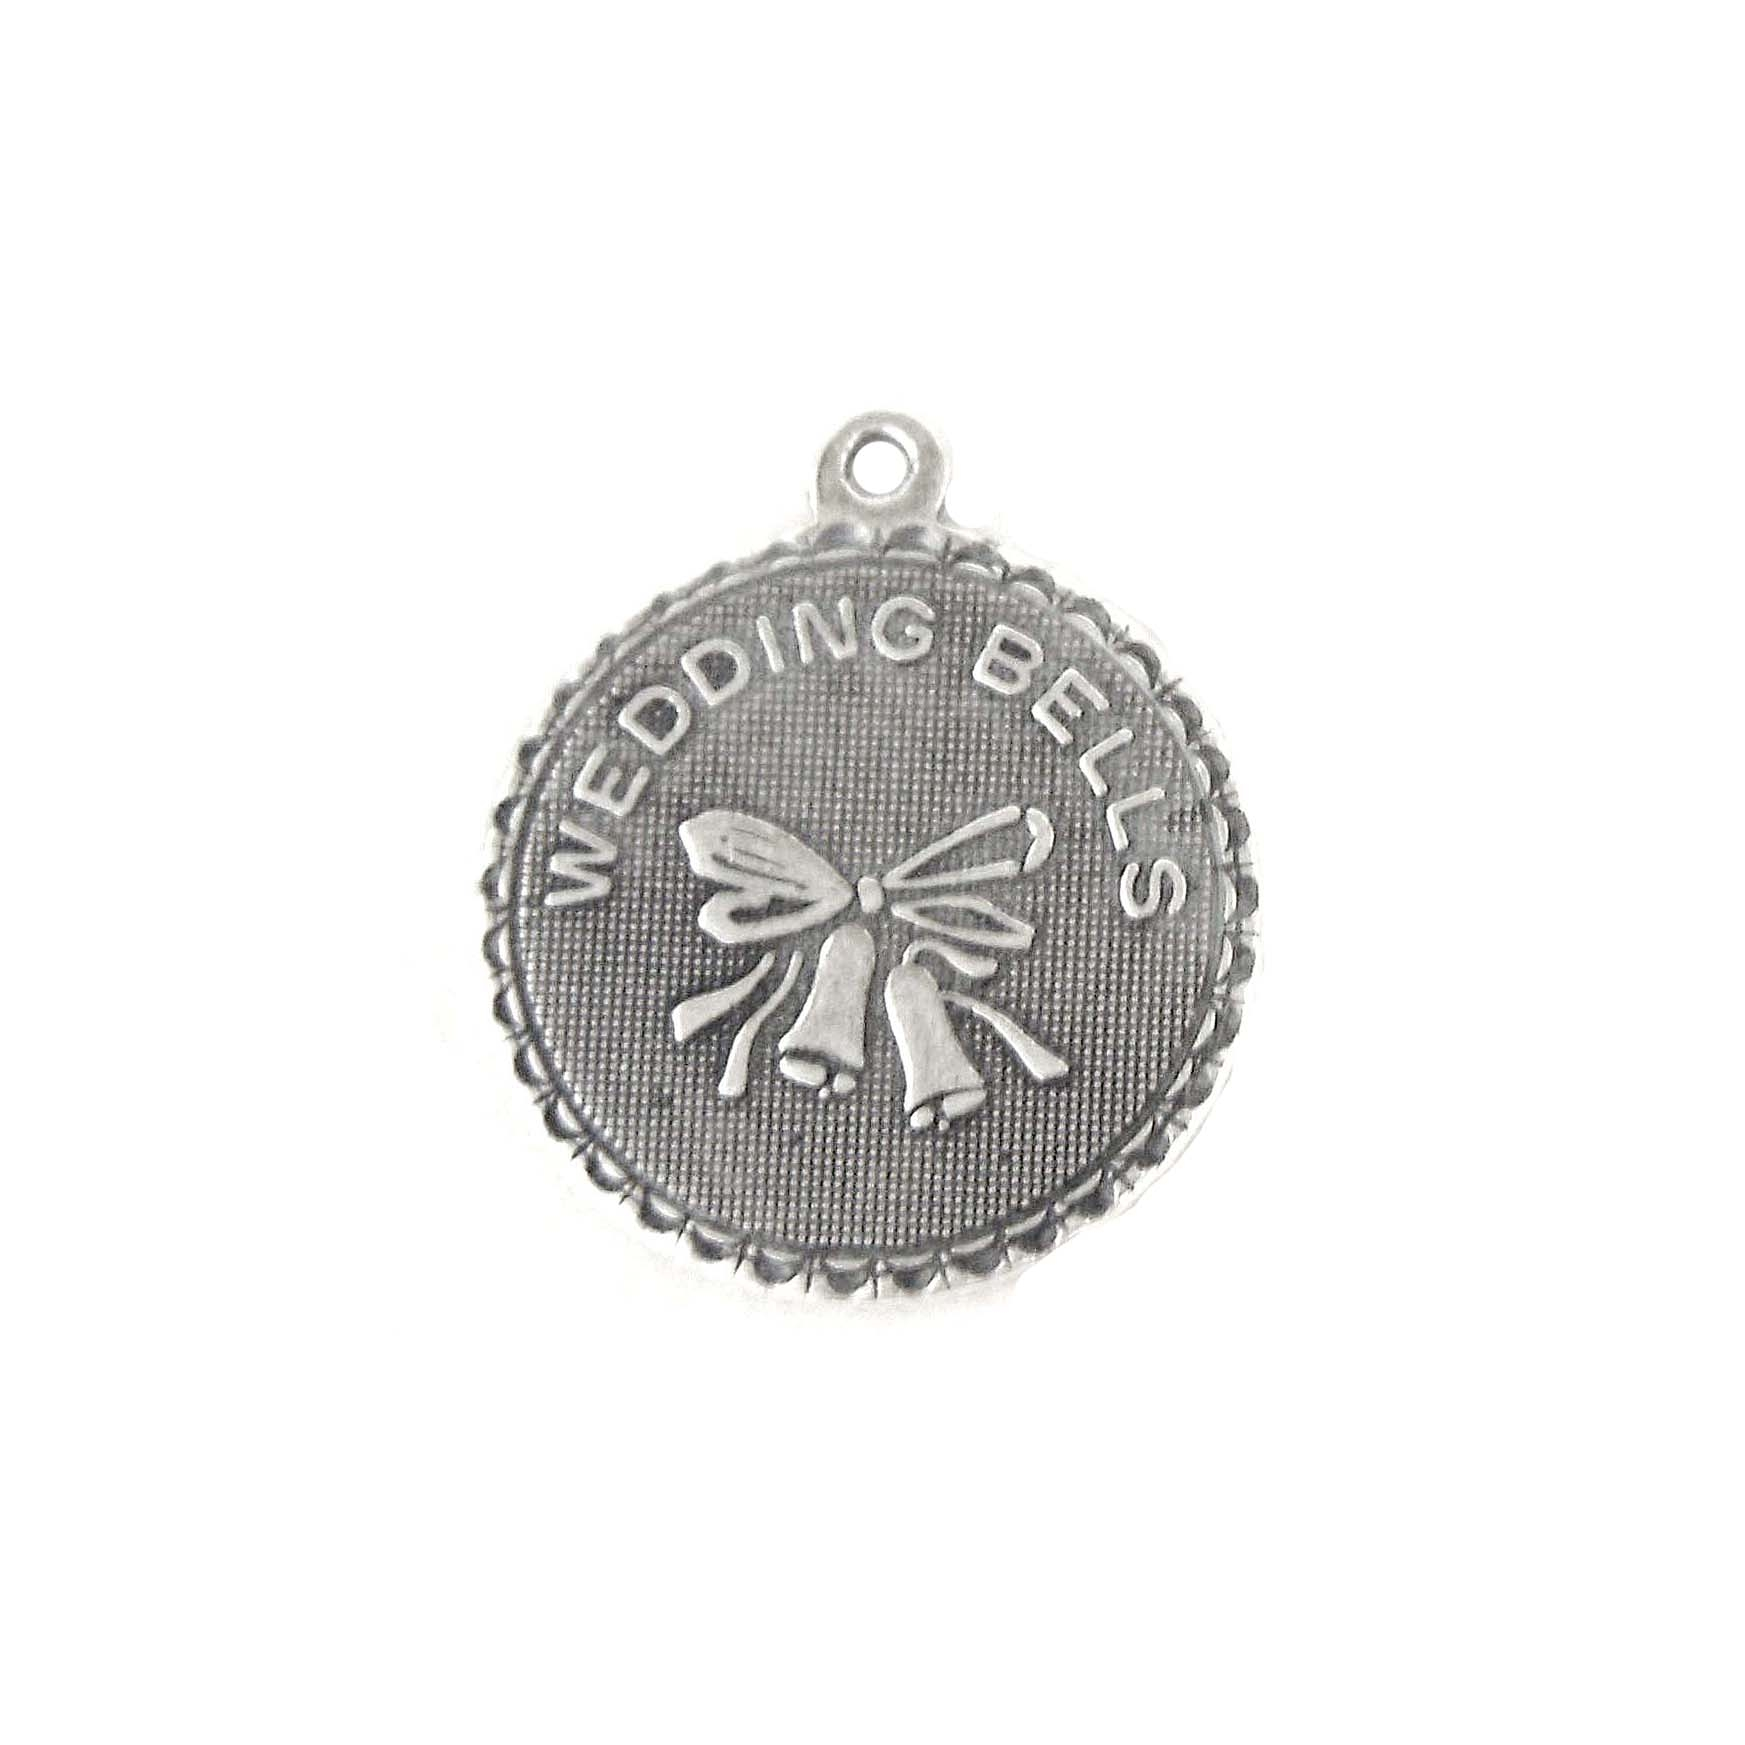 Charm, Pendant, Wedding Bells, Brass, Silverware Silverplate, 18mm